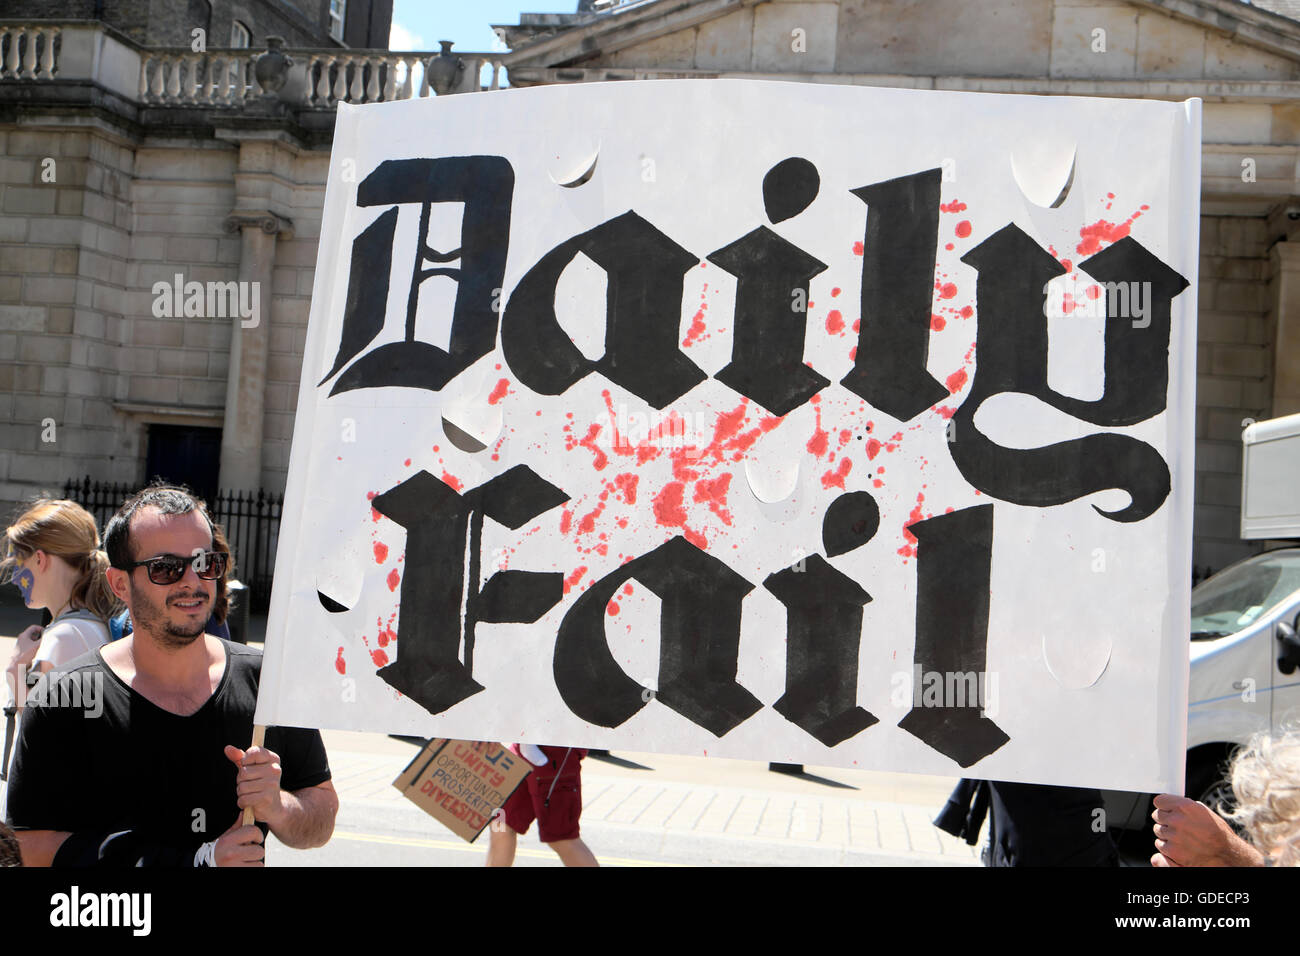 'March for Europe'  Remain voters  hold a satirical  'Daily Fail'  sign at demo Whitehall London - Stock Image